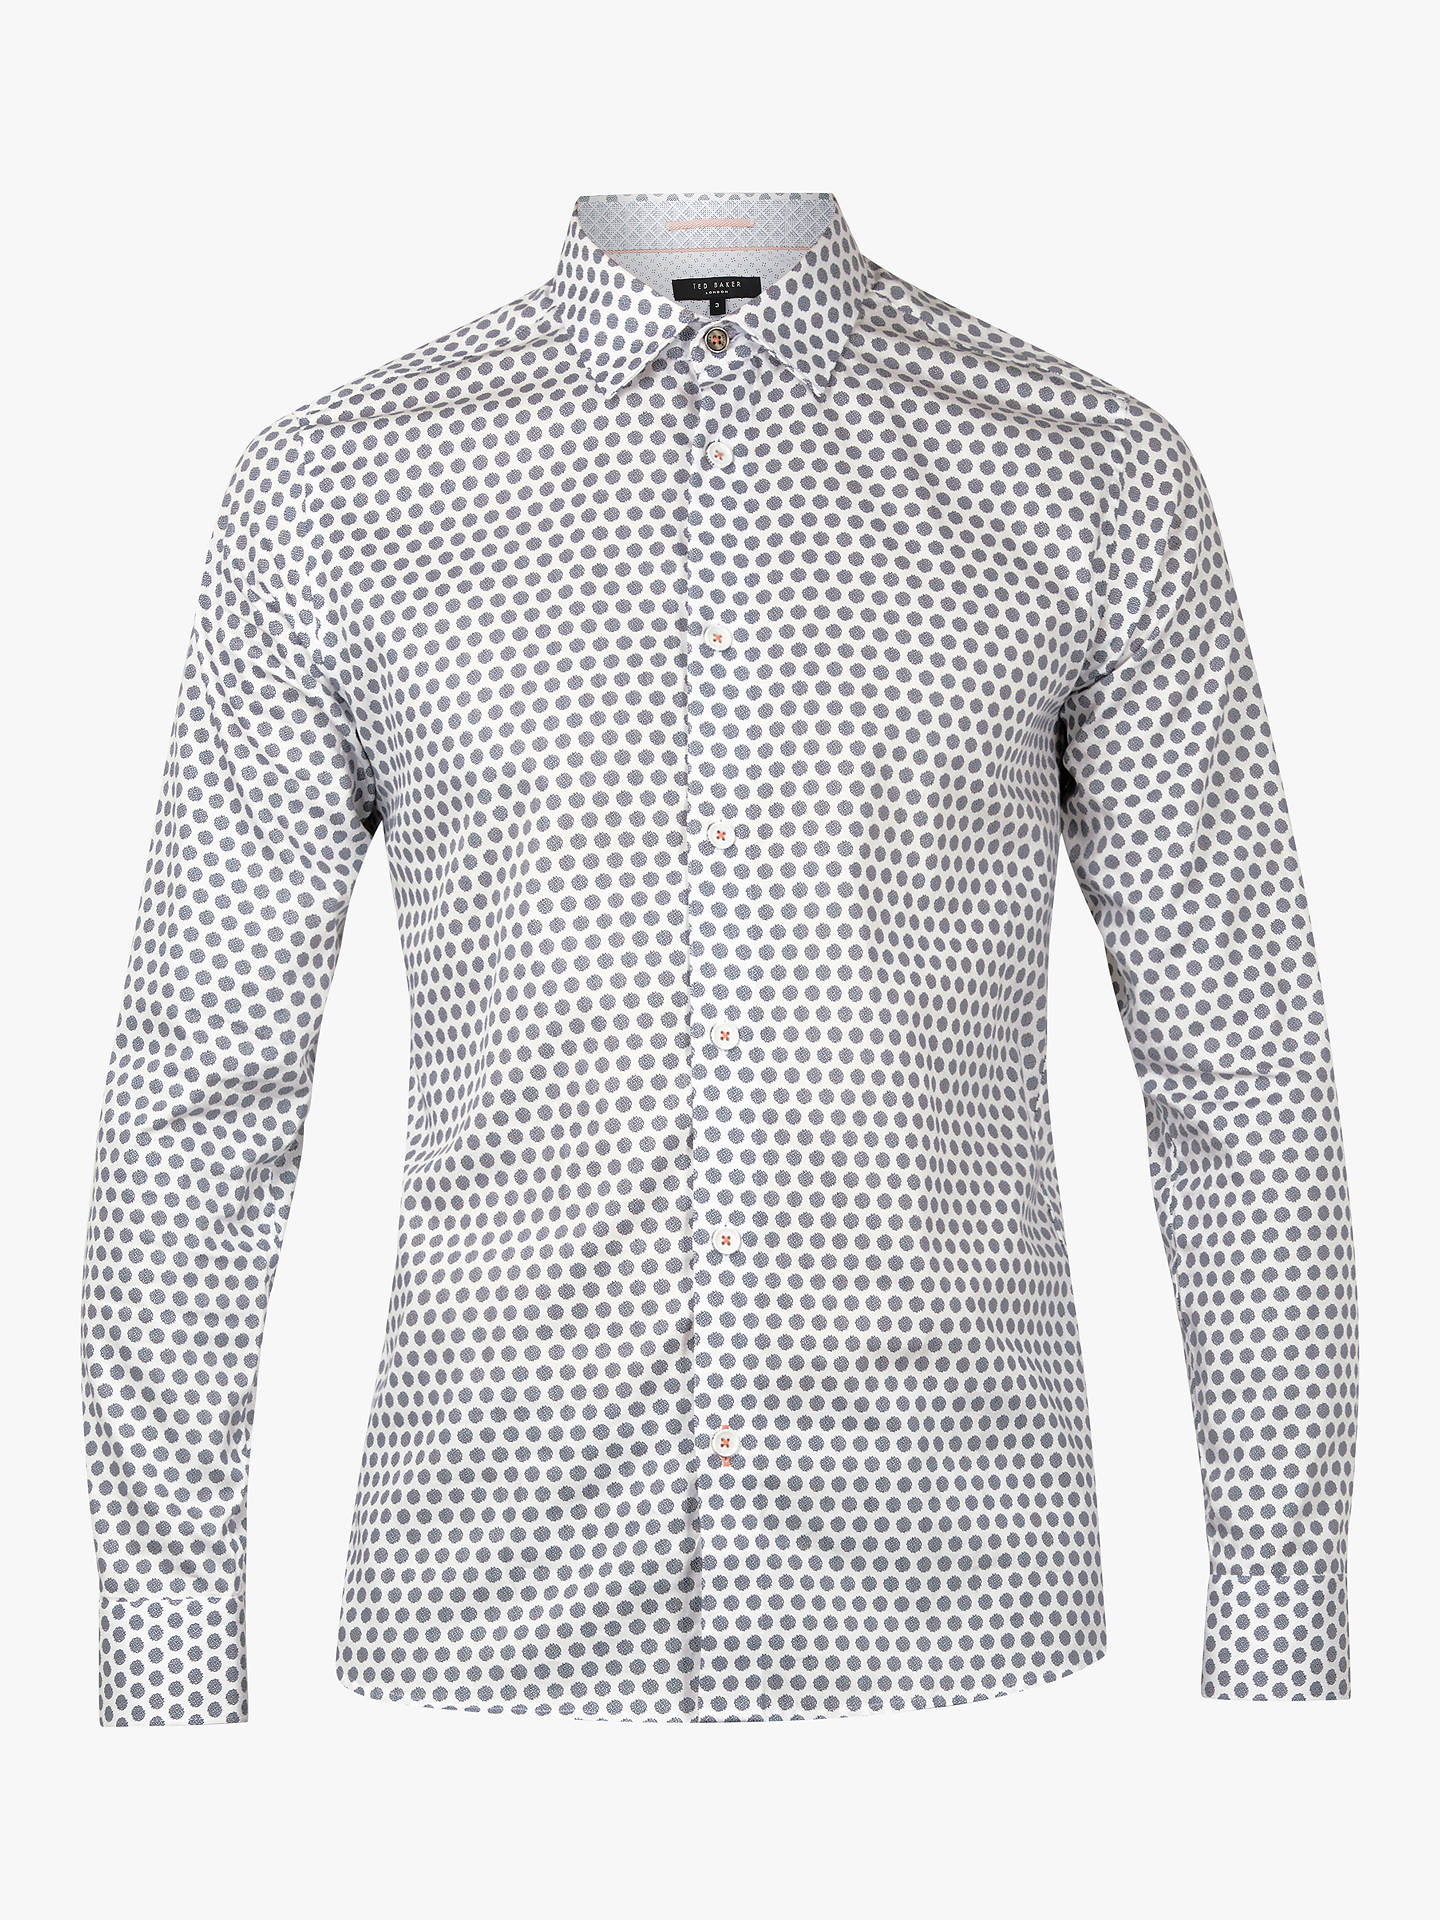 BuyTed Baker Camdent Printed Long Sleeve Shirt, White, 16 Online at johnlewis.com